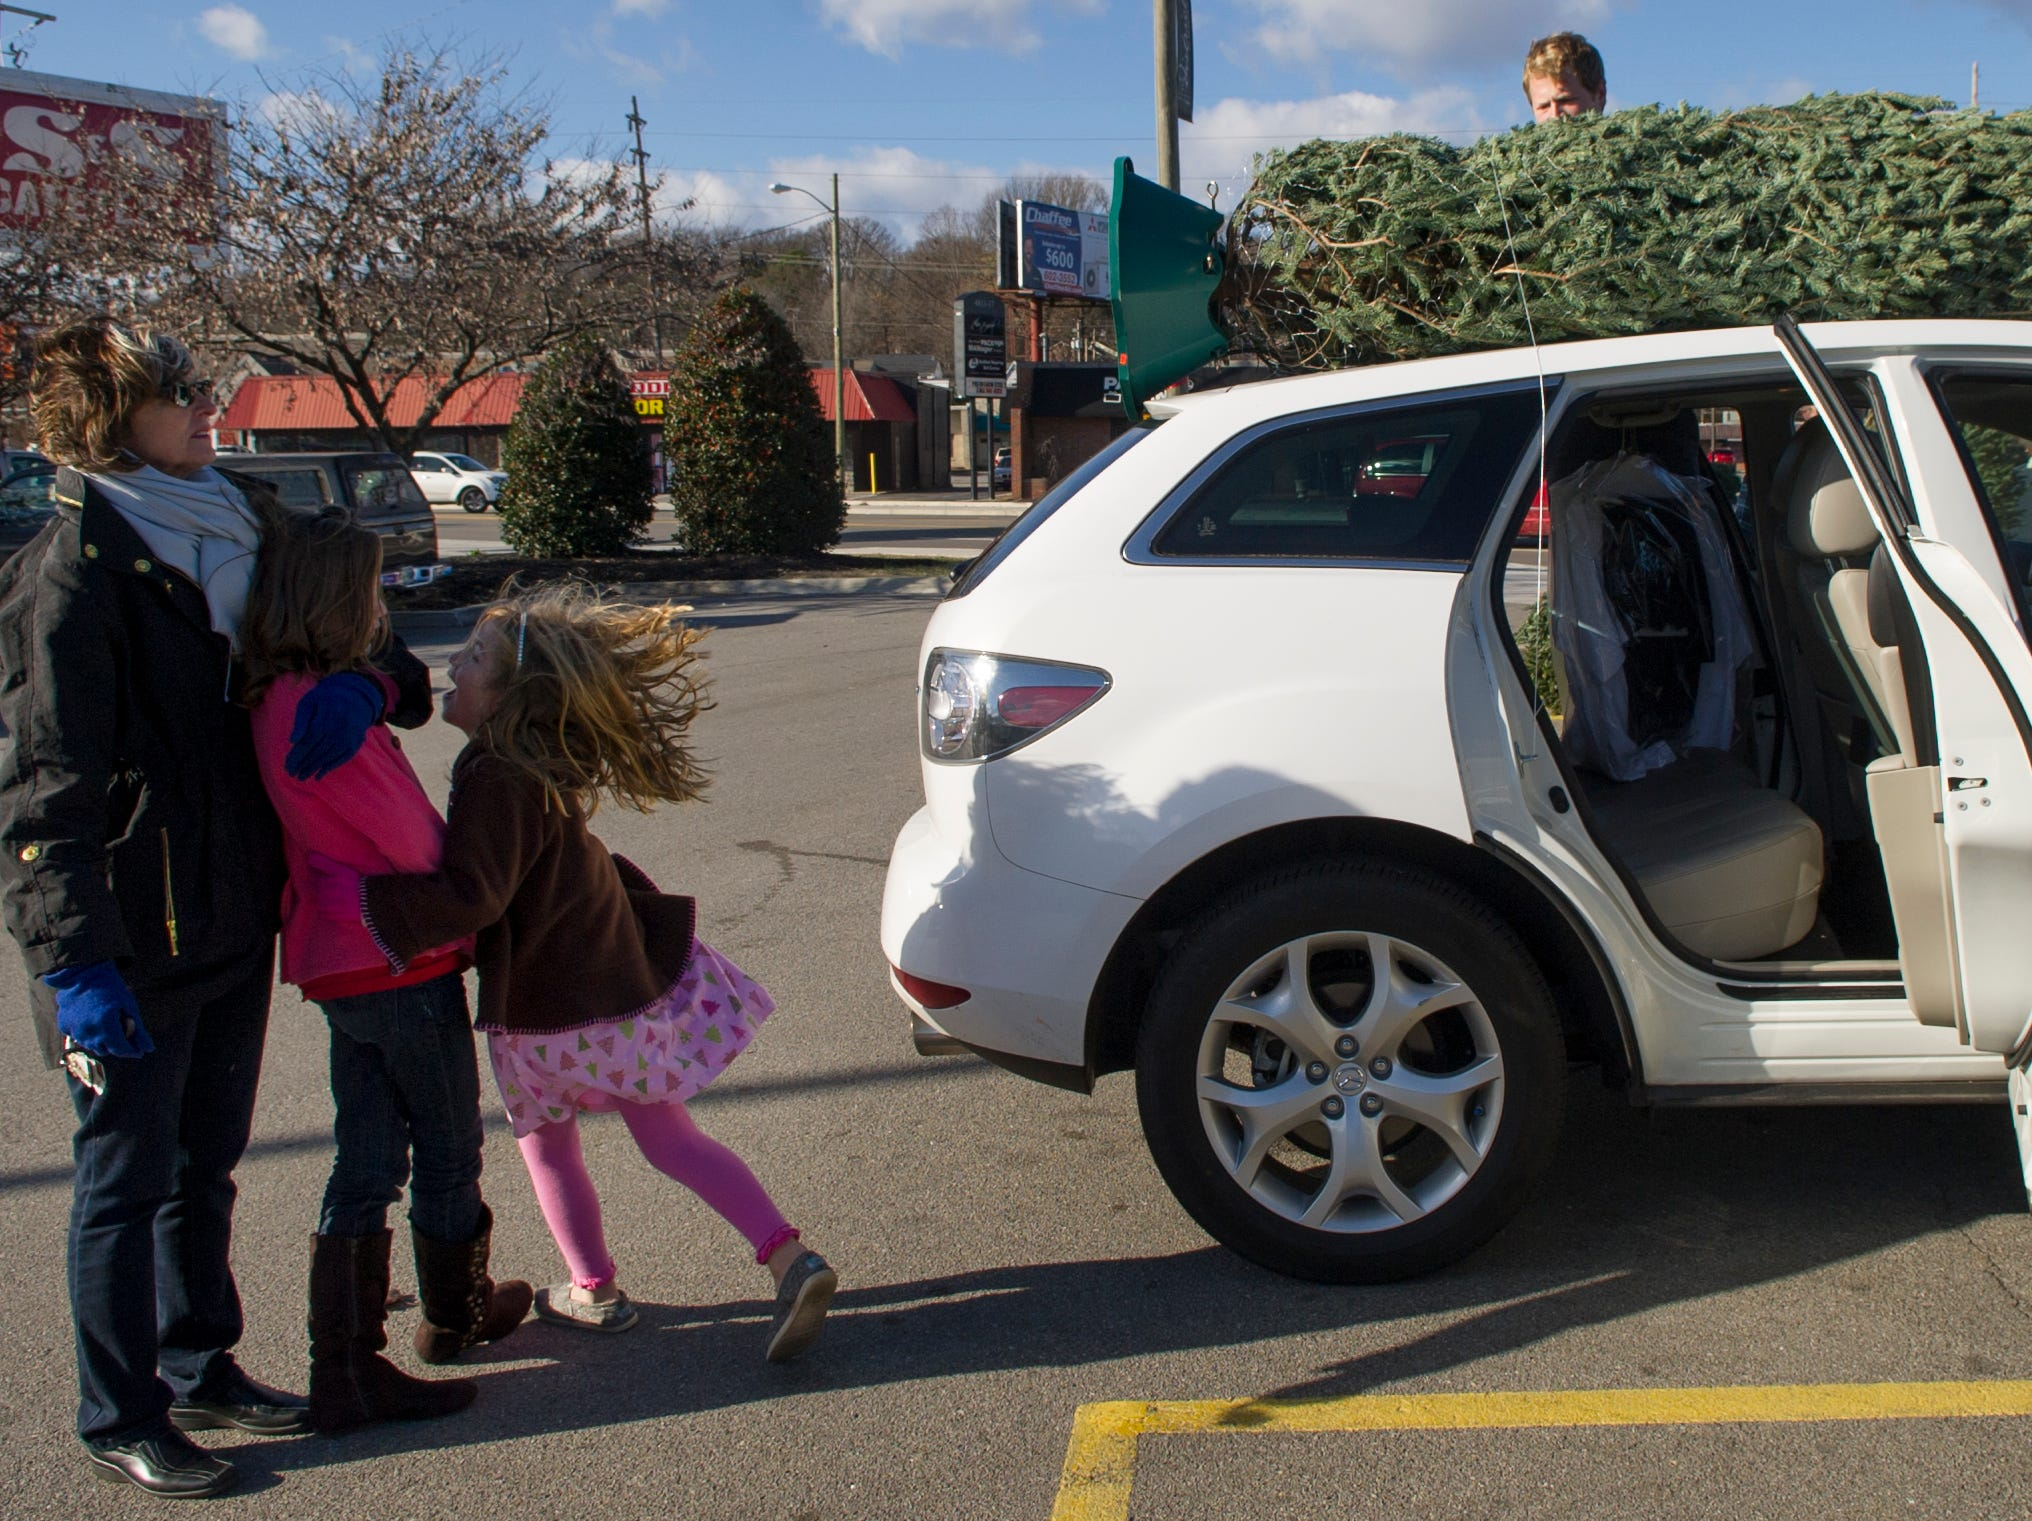 Jean Galyon, left, looks on as Mayo Garden Center employee Jeff Rizy, right, ties a Christmas tree to her car while her grandchildren, Mary Kate and Claire Holladay, left to right, look on at the store Friday, Dec. 21, 2012.